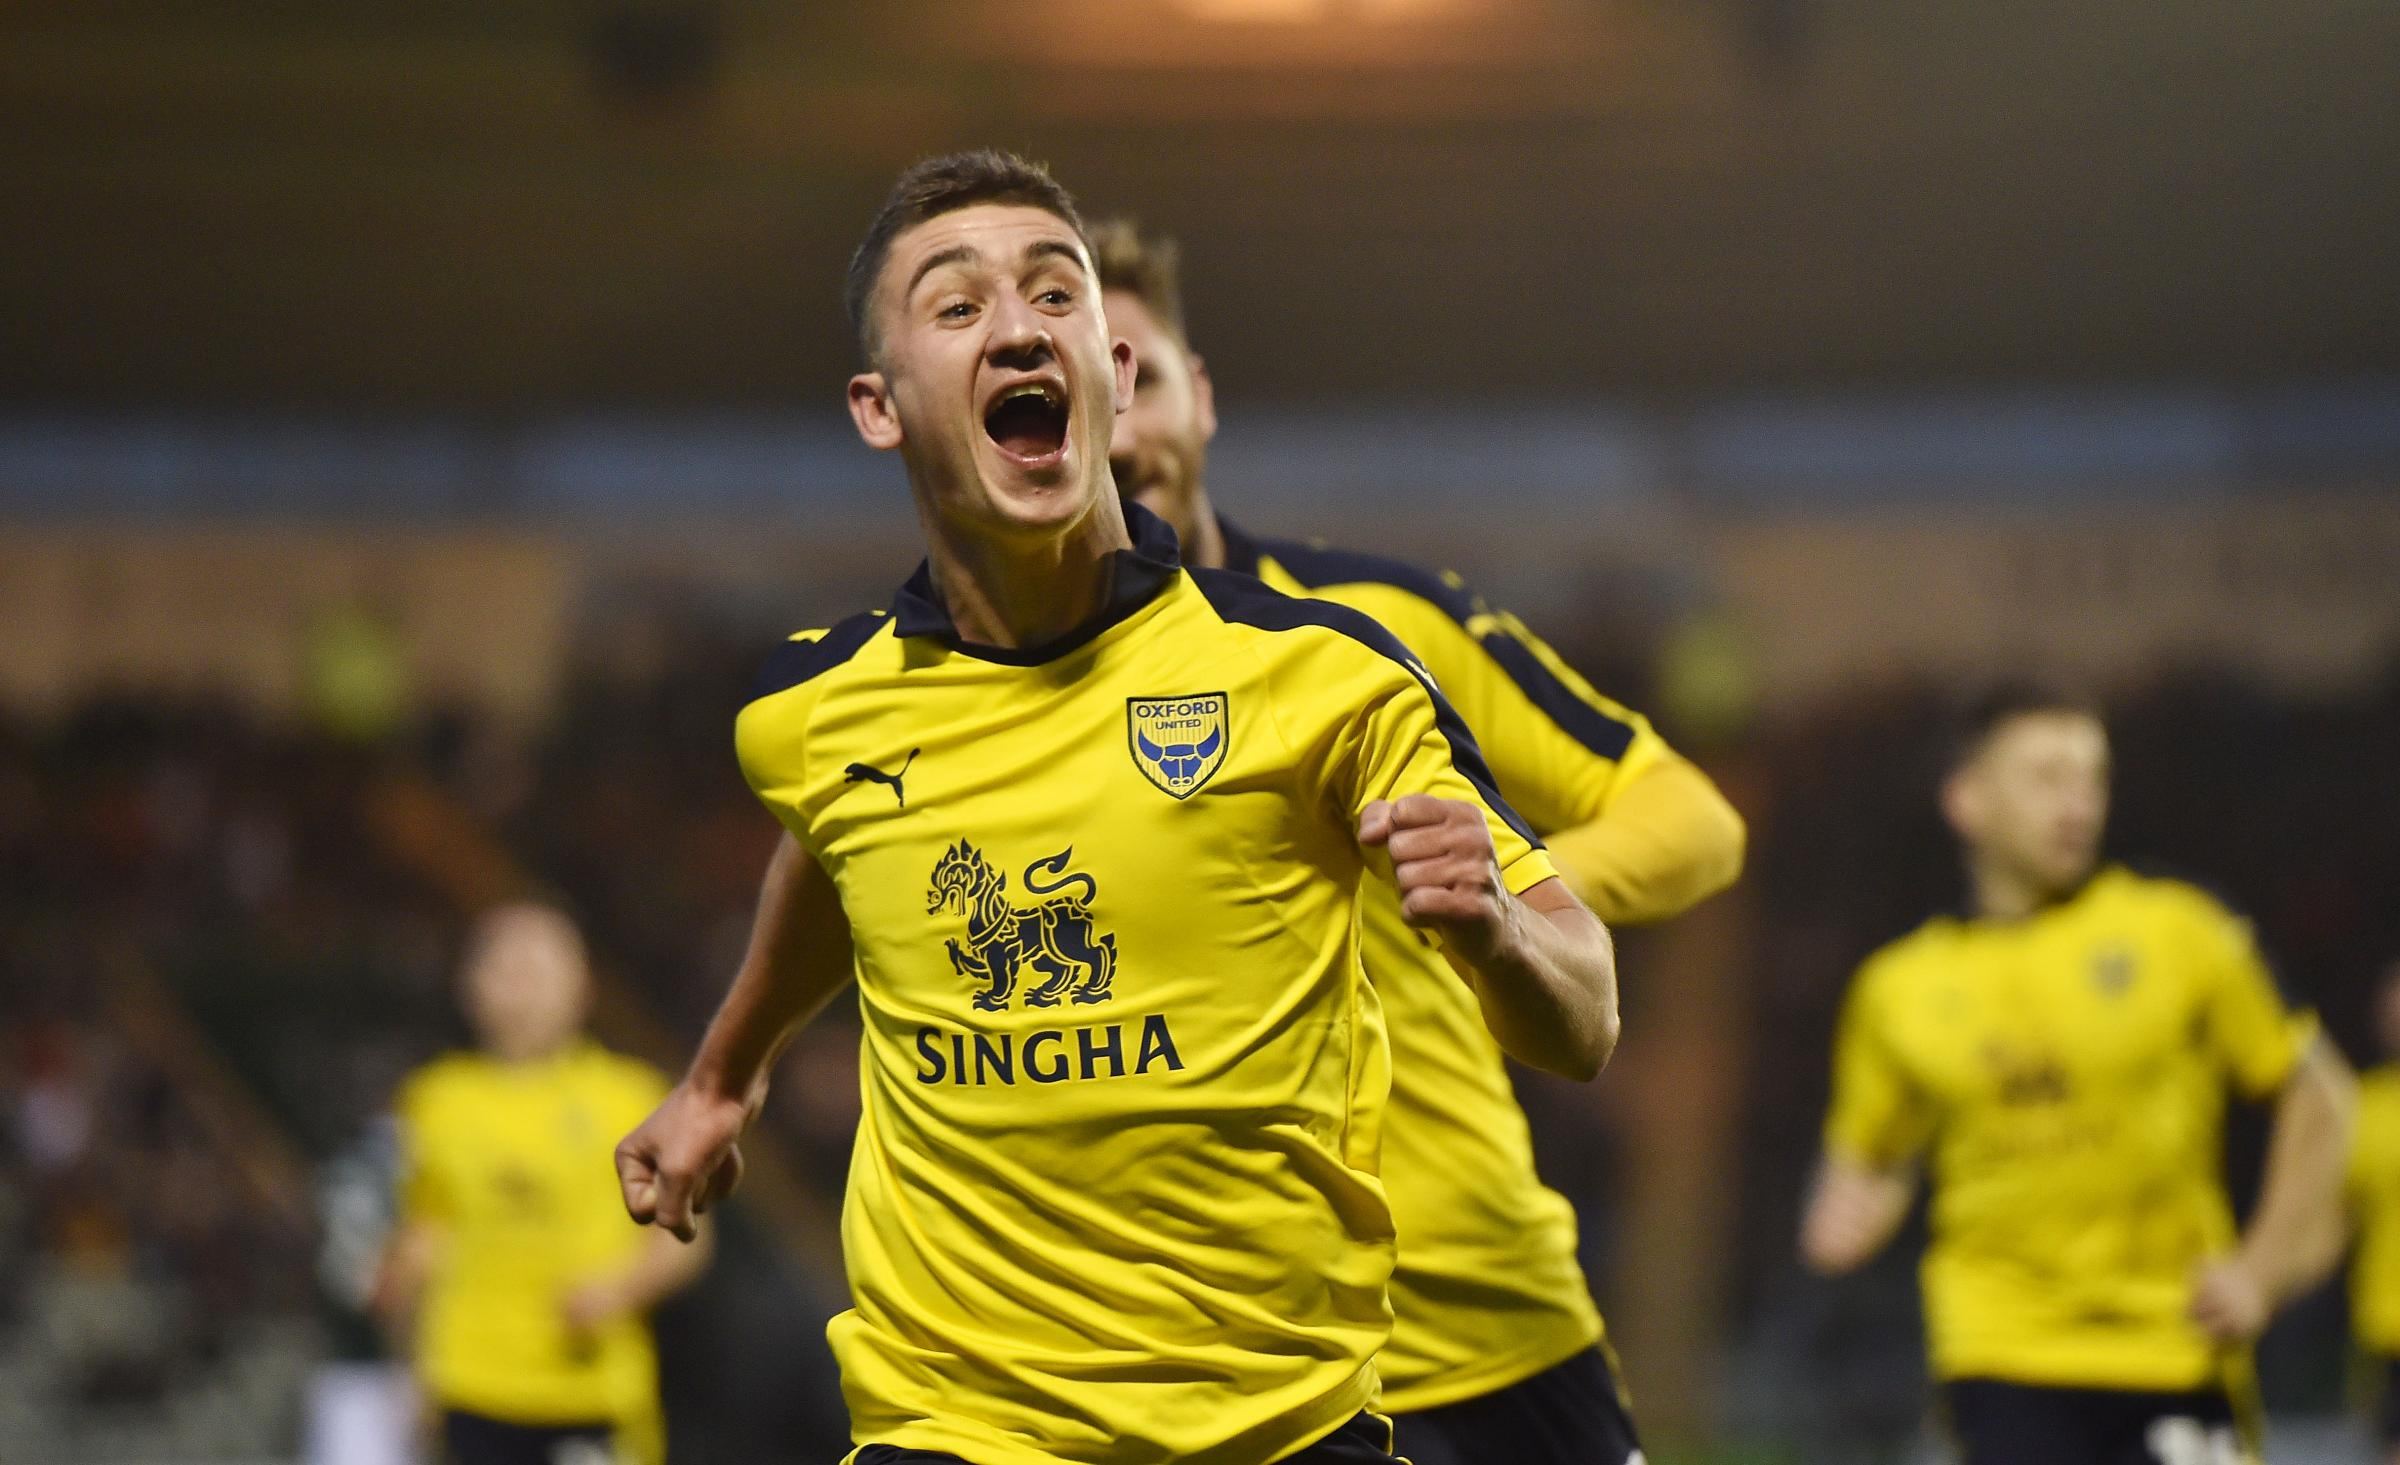 An elated Cameron Brannagan races towards the travelling Oxford United supporters after scoring against Plymouth Argyle, but was booked for his celebration Picture: Sean Hernon/PPAUK